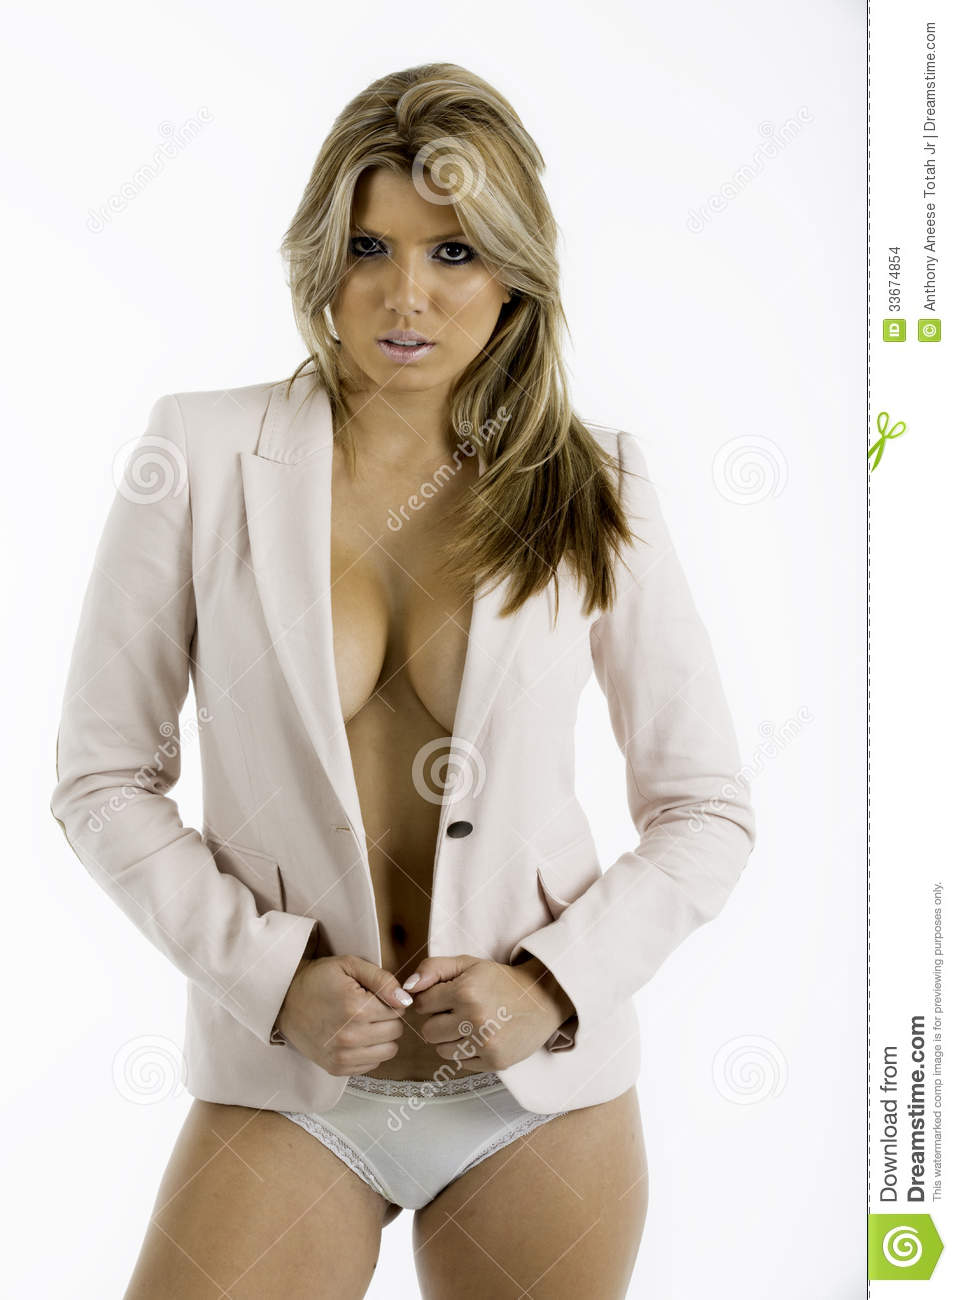 women in business suit porn pics